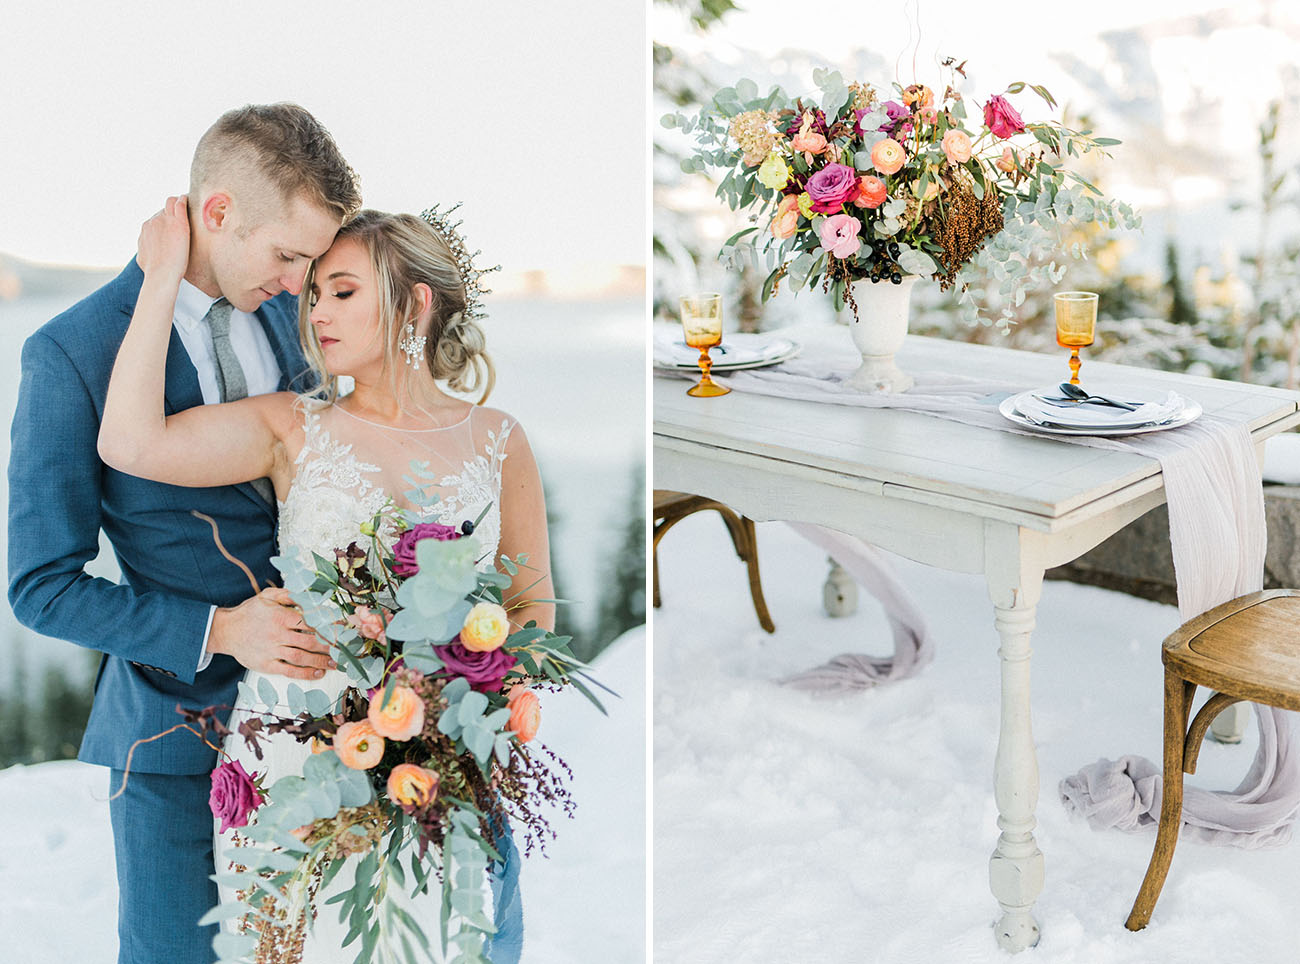 All the florals for the shoot were bold ones to highlight the snowy look